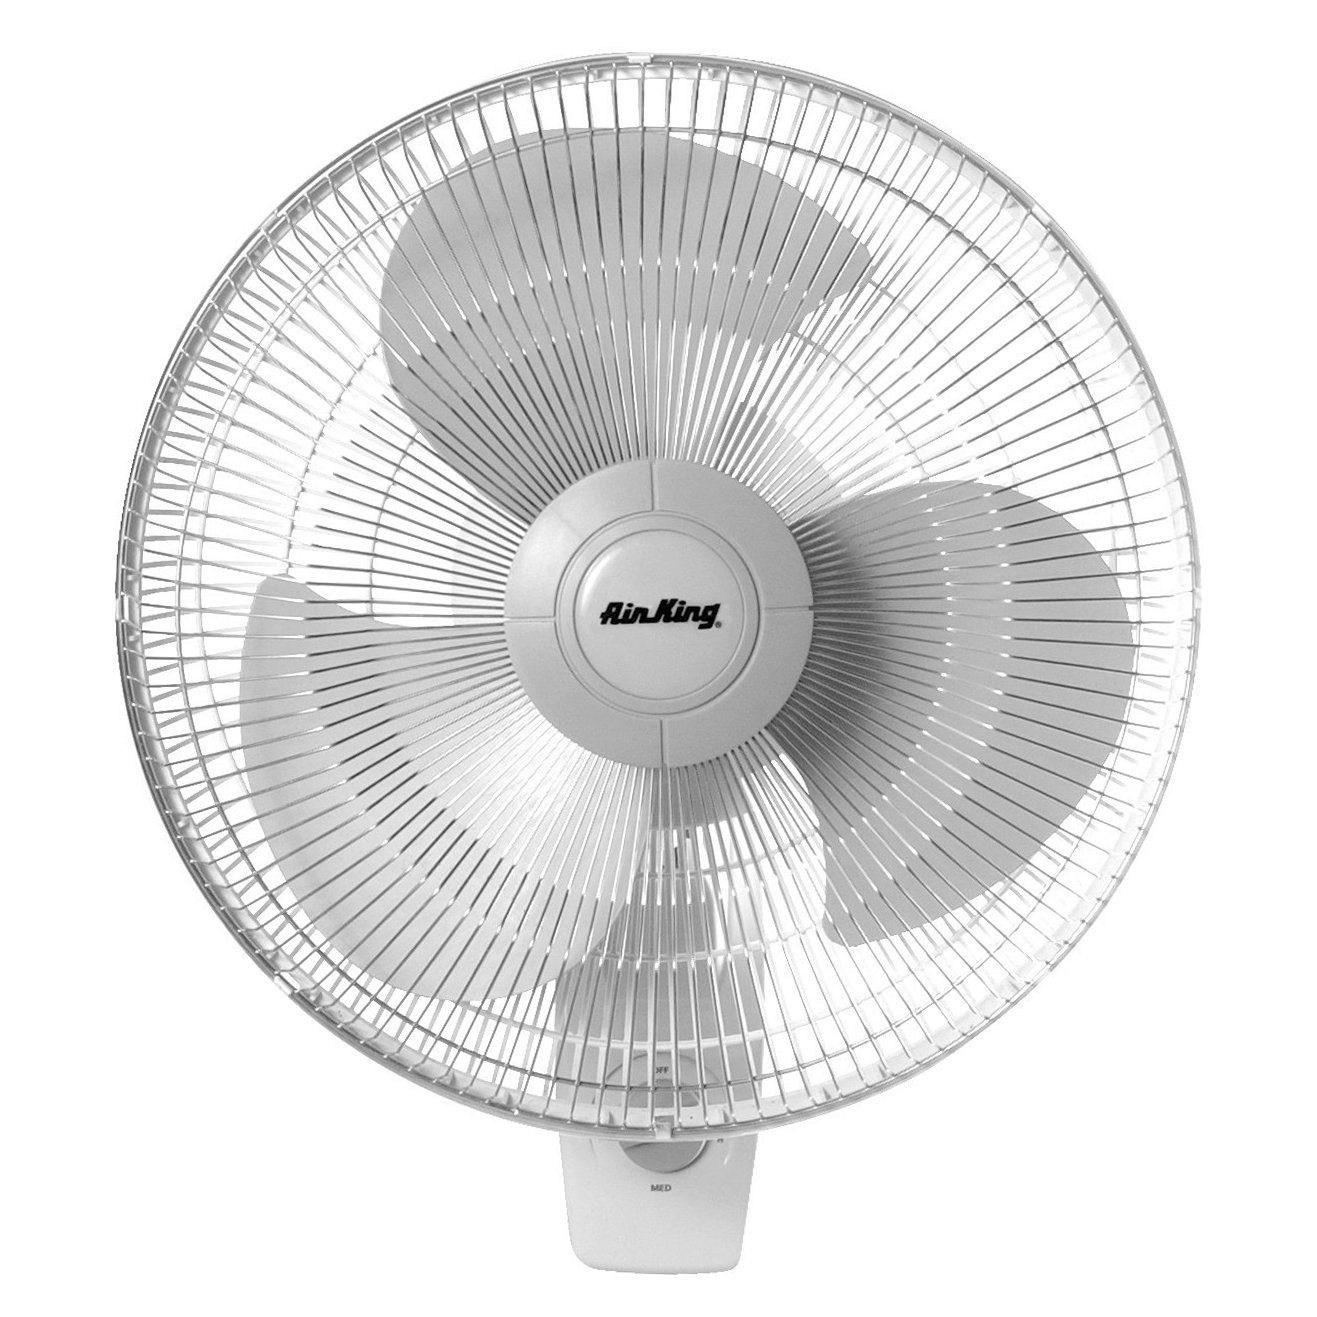 Air King 9016 16 Inch Commercial Grade Oscillating 3 Blade Wall Mount Fan 9016